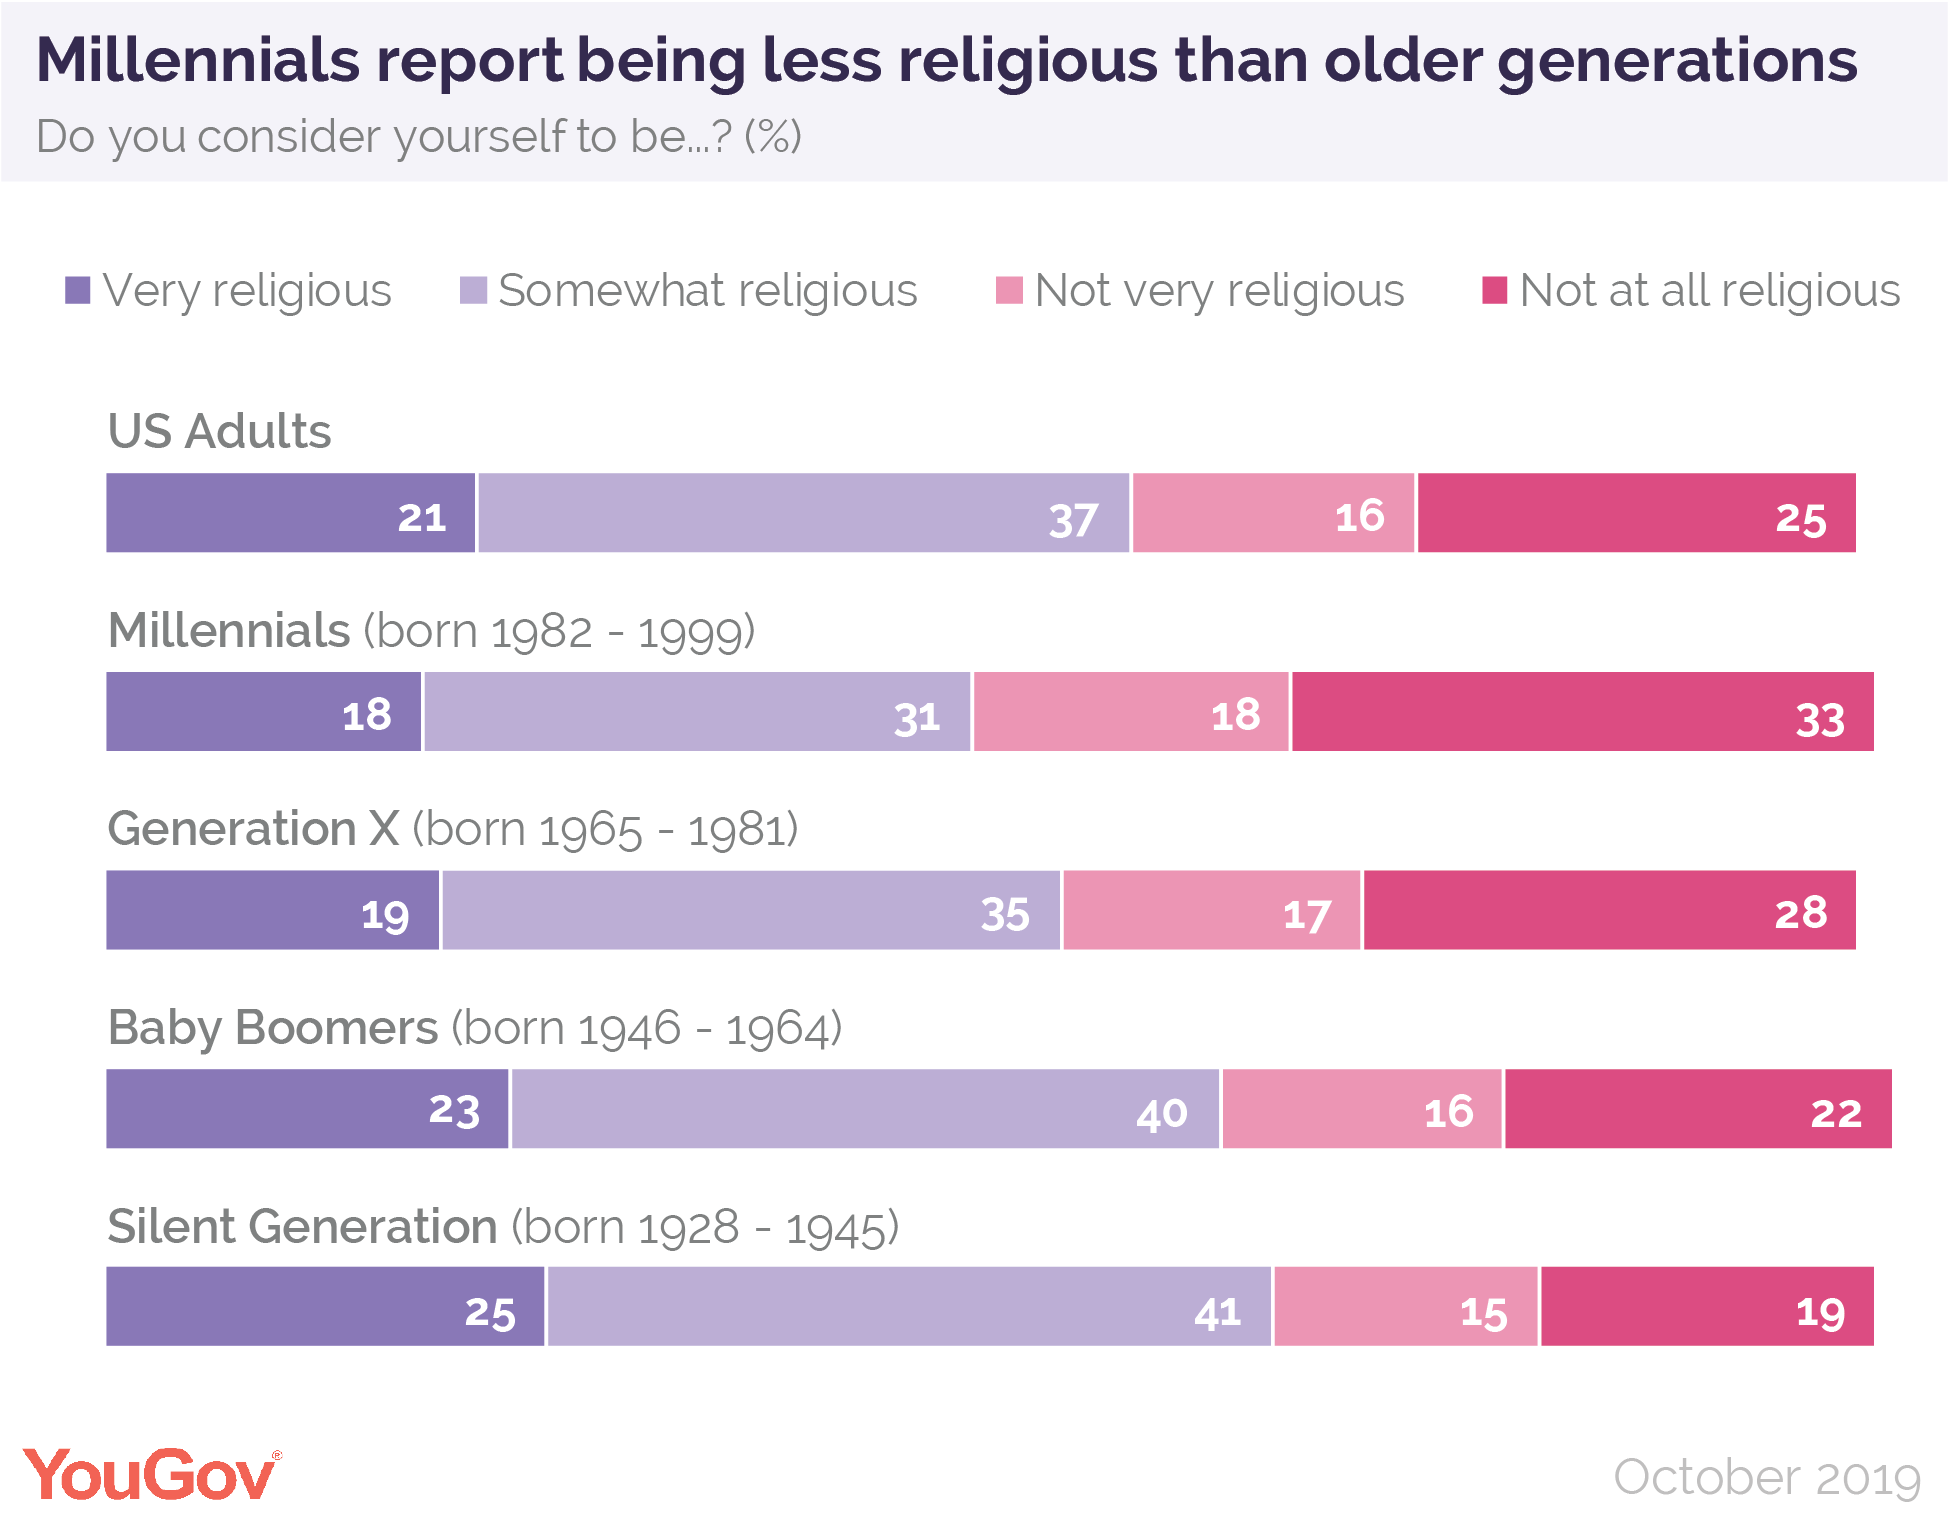 Millennials report being less religious than older generations